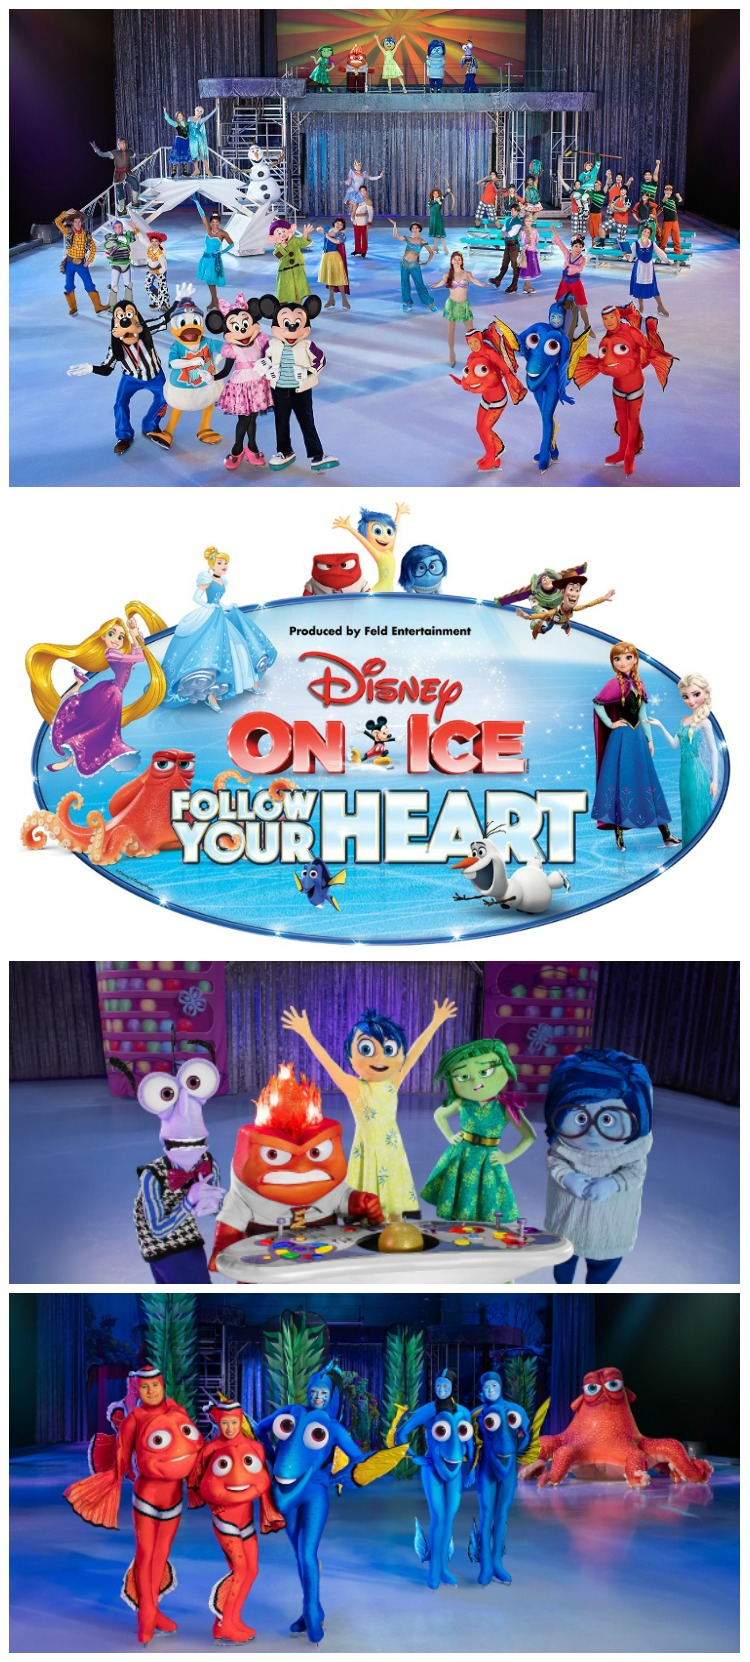 Enter to win a 4pack of tickets to Disney on Ice Follow Your Heart in San Diego! Ends 1/19 AD